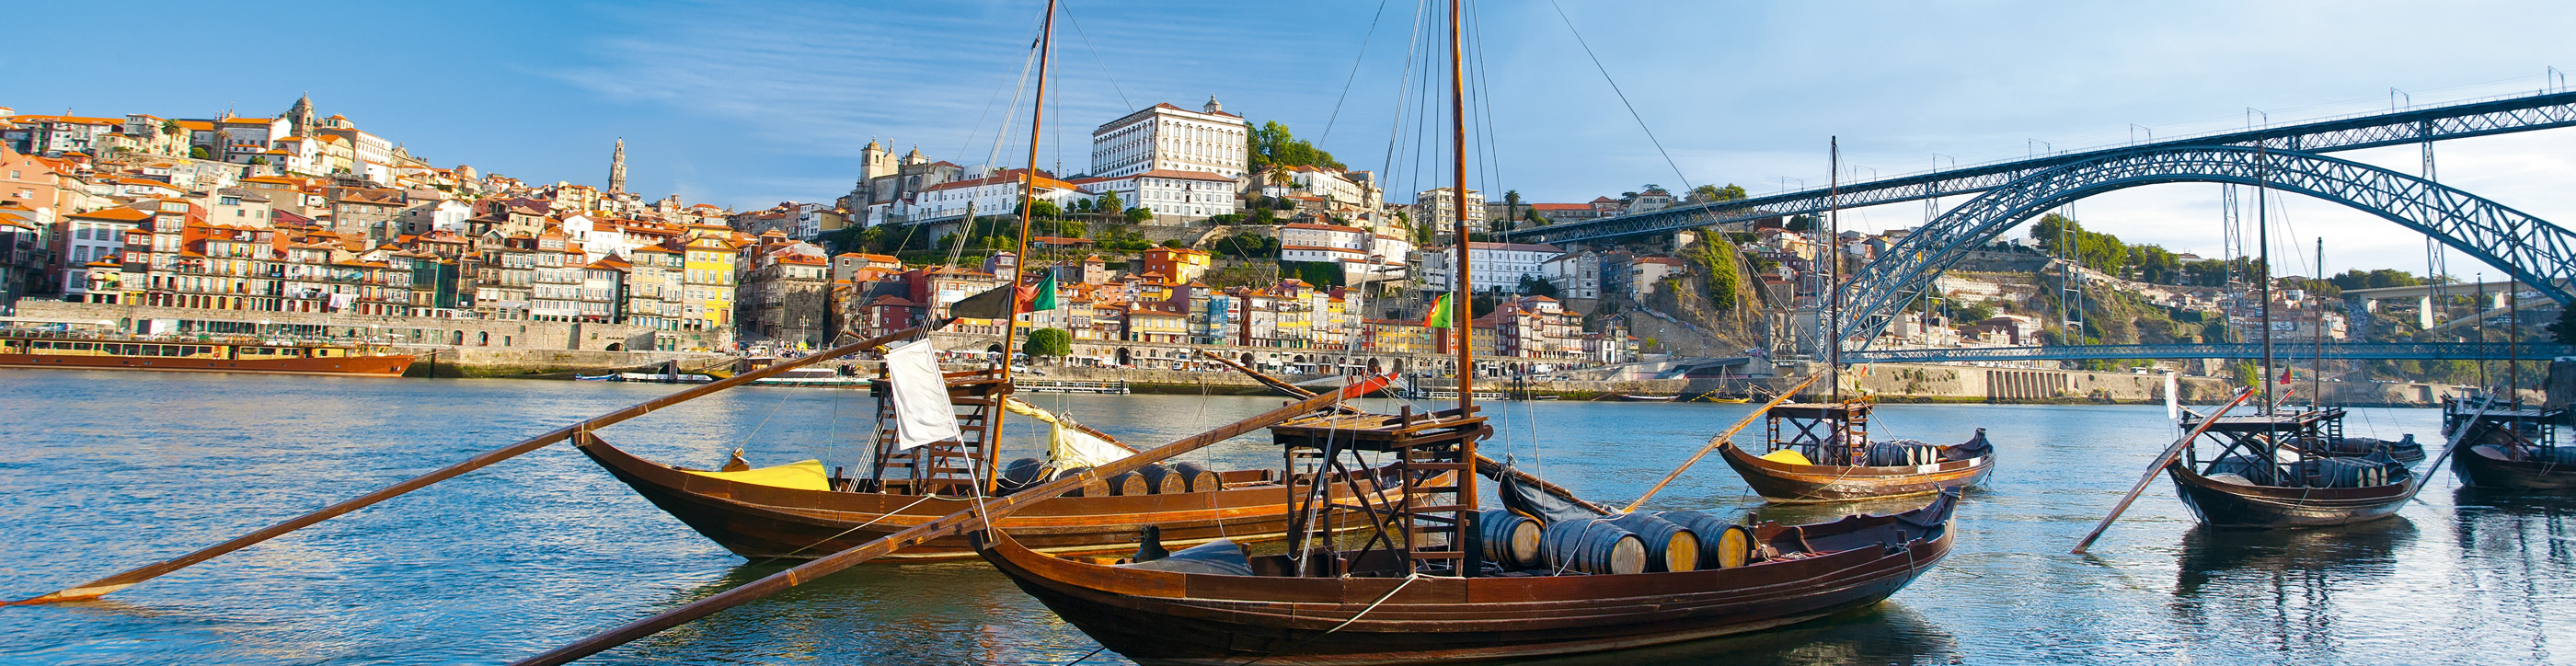 Portugal, Spain & the Douro 2019 (Lisbon to Porto)